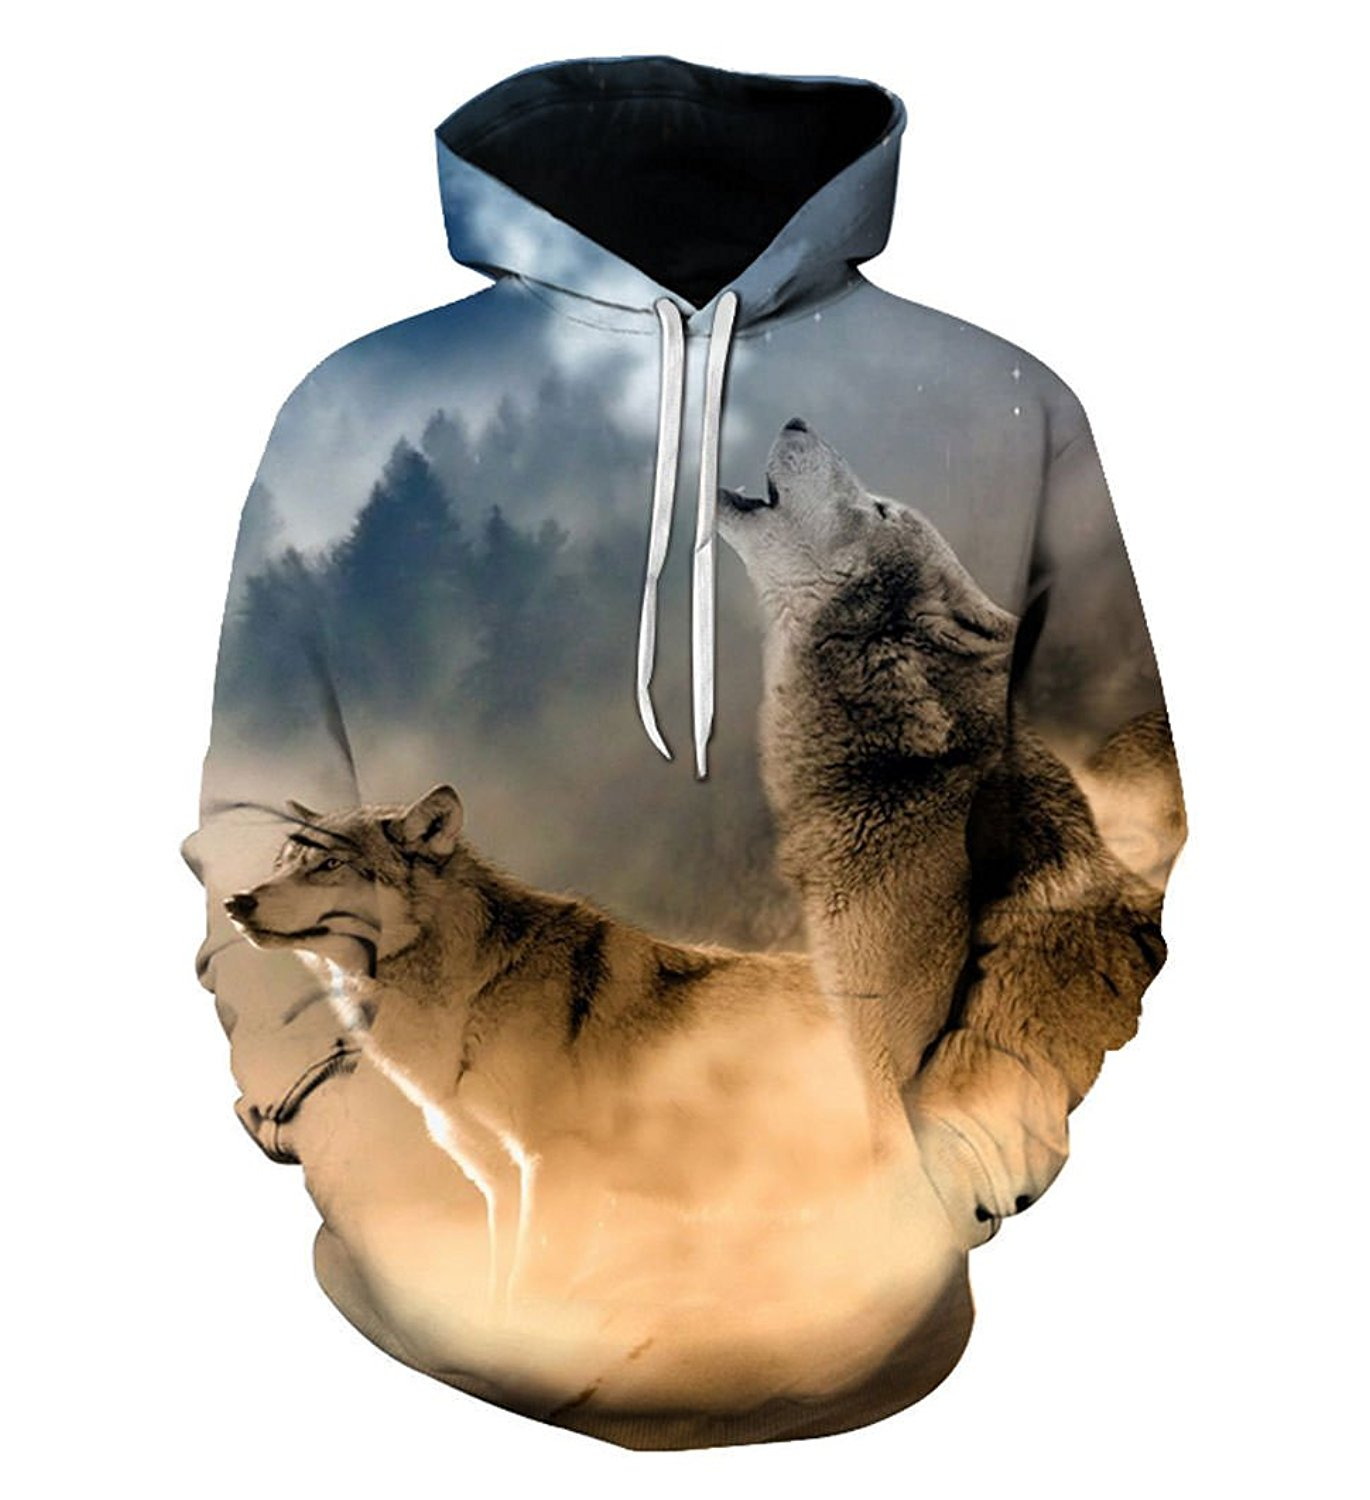 a74db91c7151ec Get Quotations · SWAG Hipster Men Animal Printed Hoodies Wolf Sweatshirts  Hooded Cool Hoody